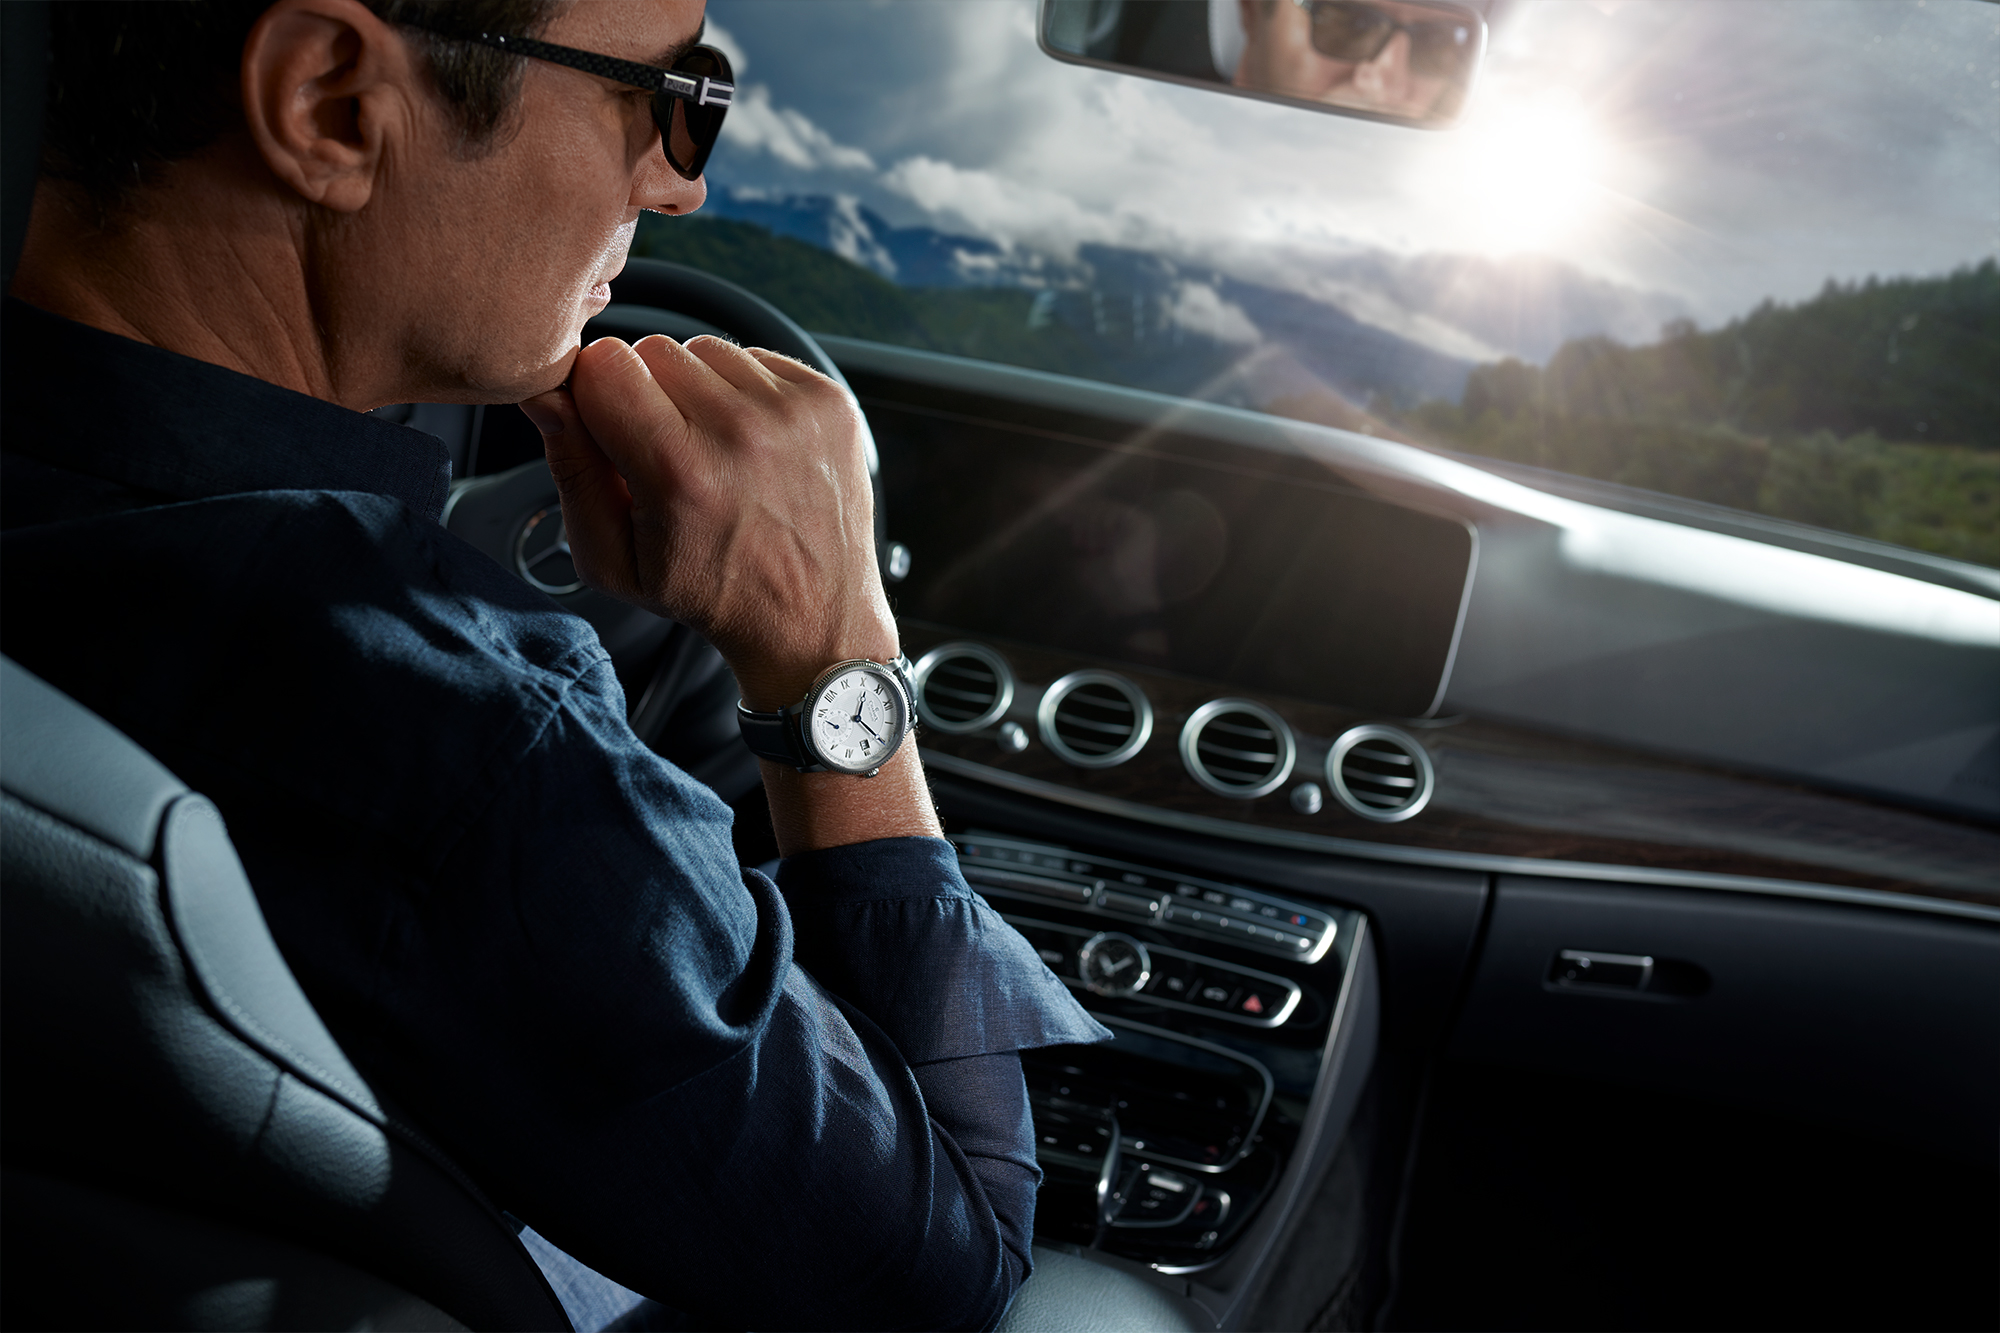 lifestyle photoshooting for a swiss watch brand